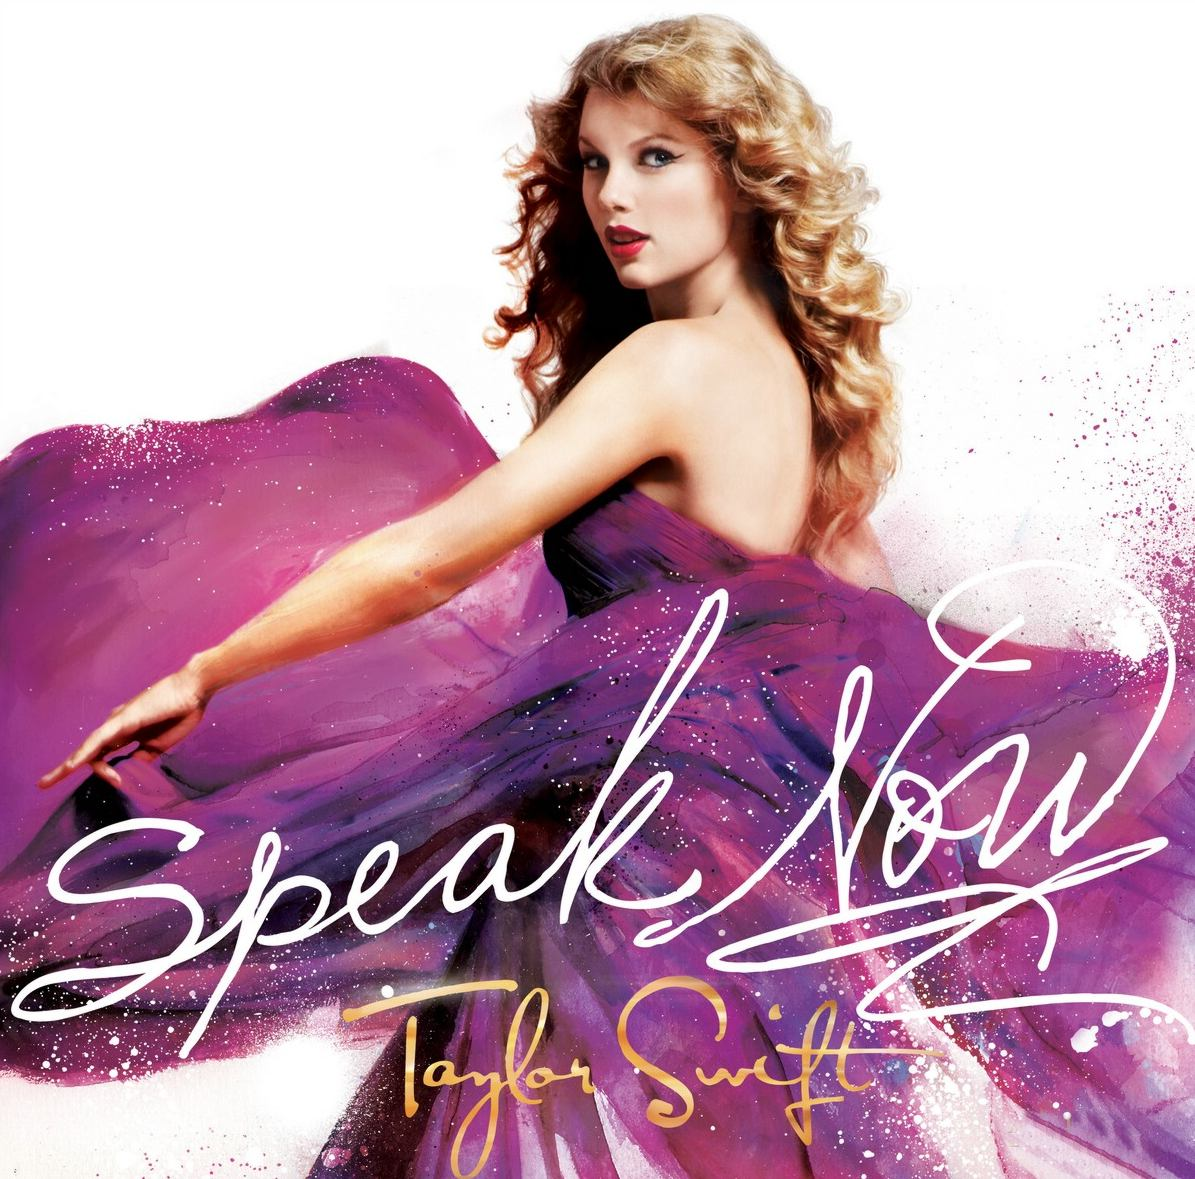 http://2.bp.blogspot.com/-IAh8KzYoocA/Tc2M-dwxebI/AAAAAAAAAKQ/5BZ_AVUFj9g/s1600/taylor-swift-speak-now-01.jpg